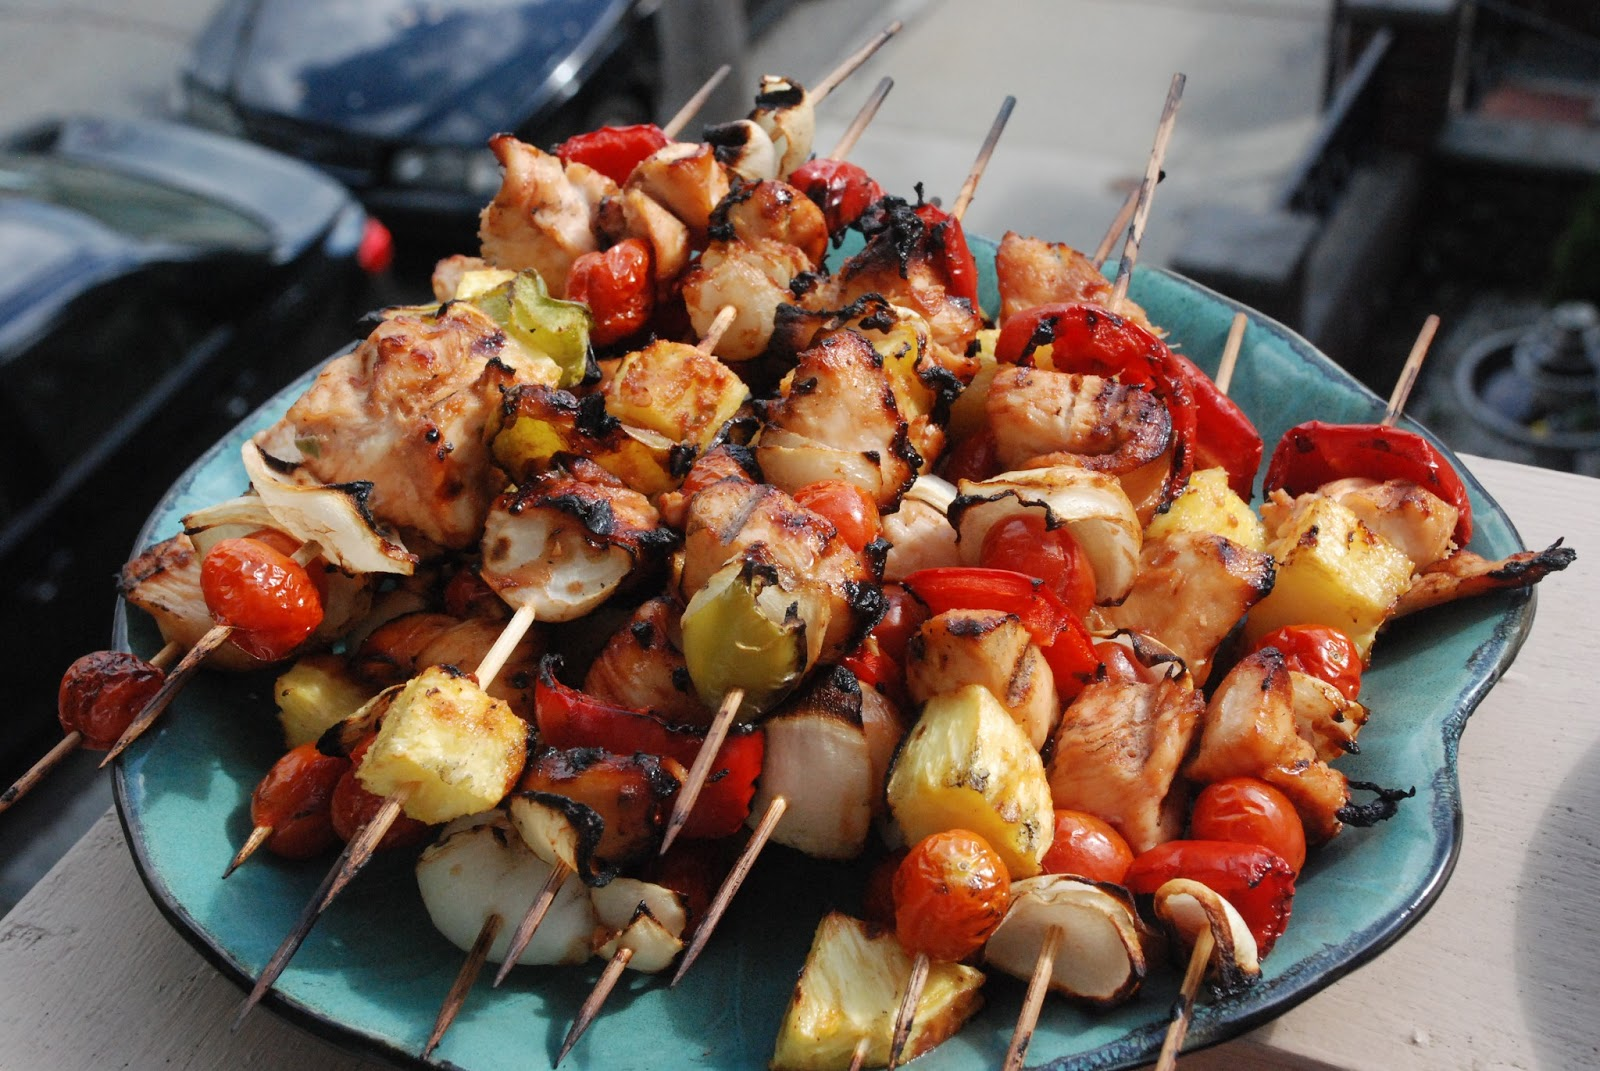 blogoneserecipes: Chicken Shish Kabob Saget (with grilled Corn on the ...